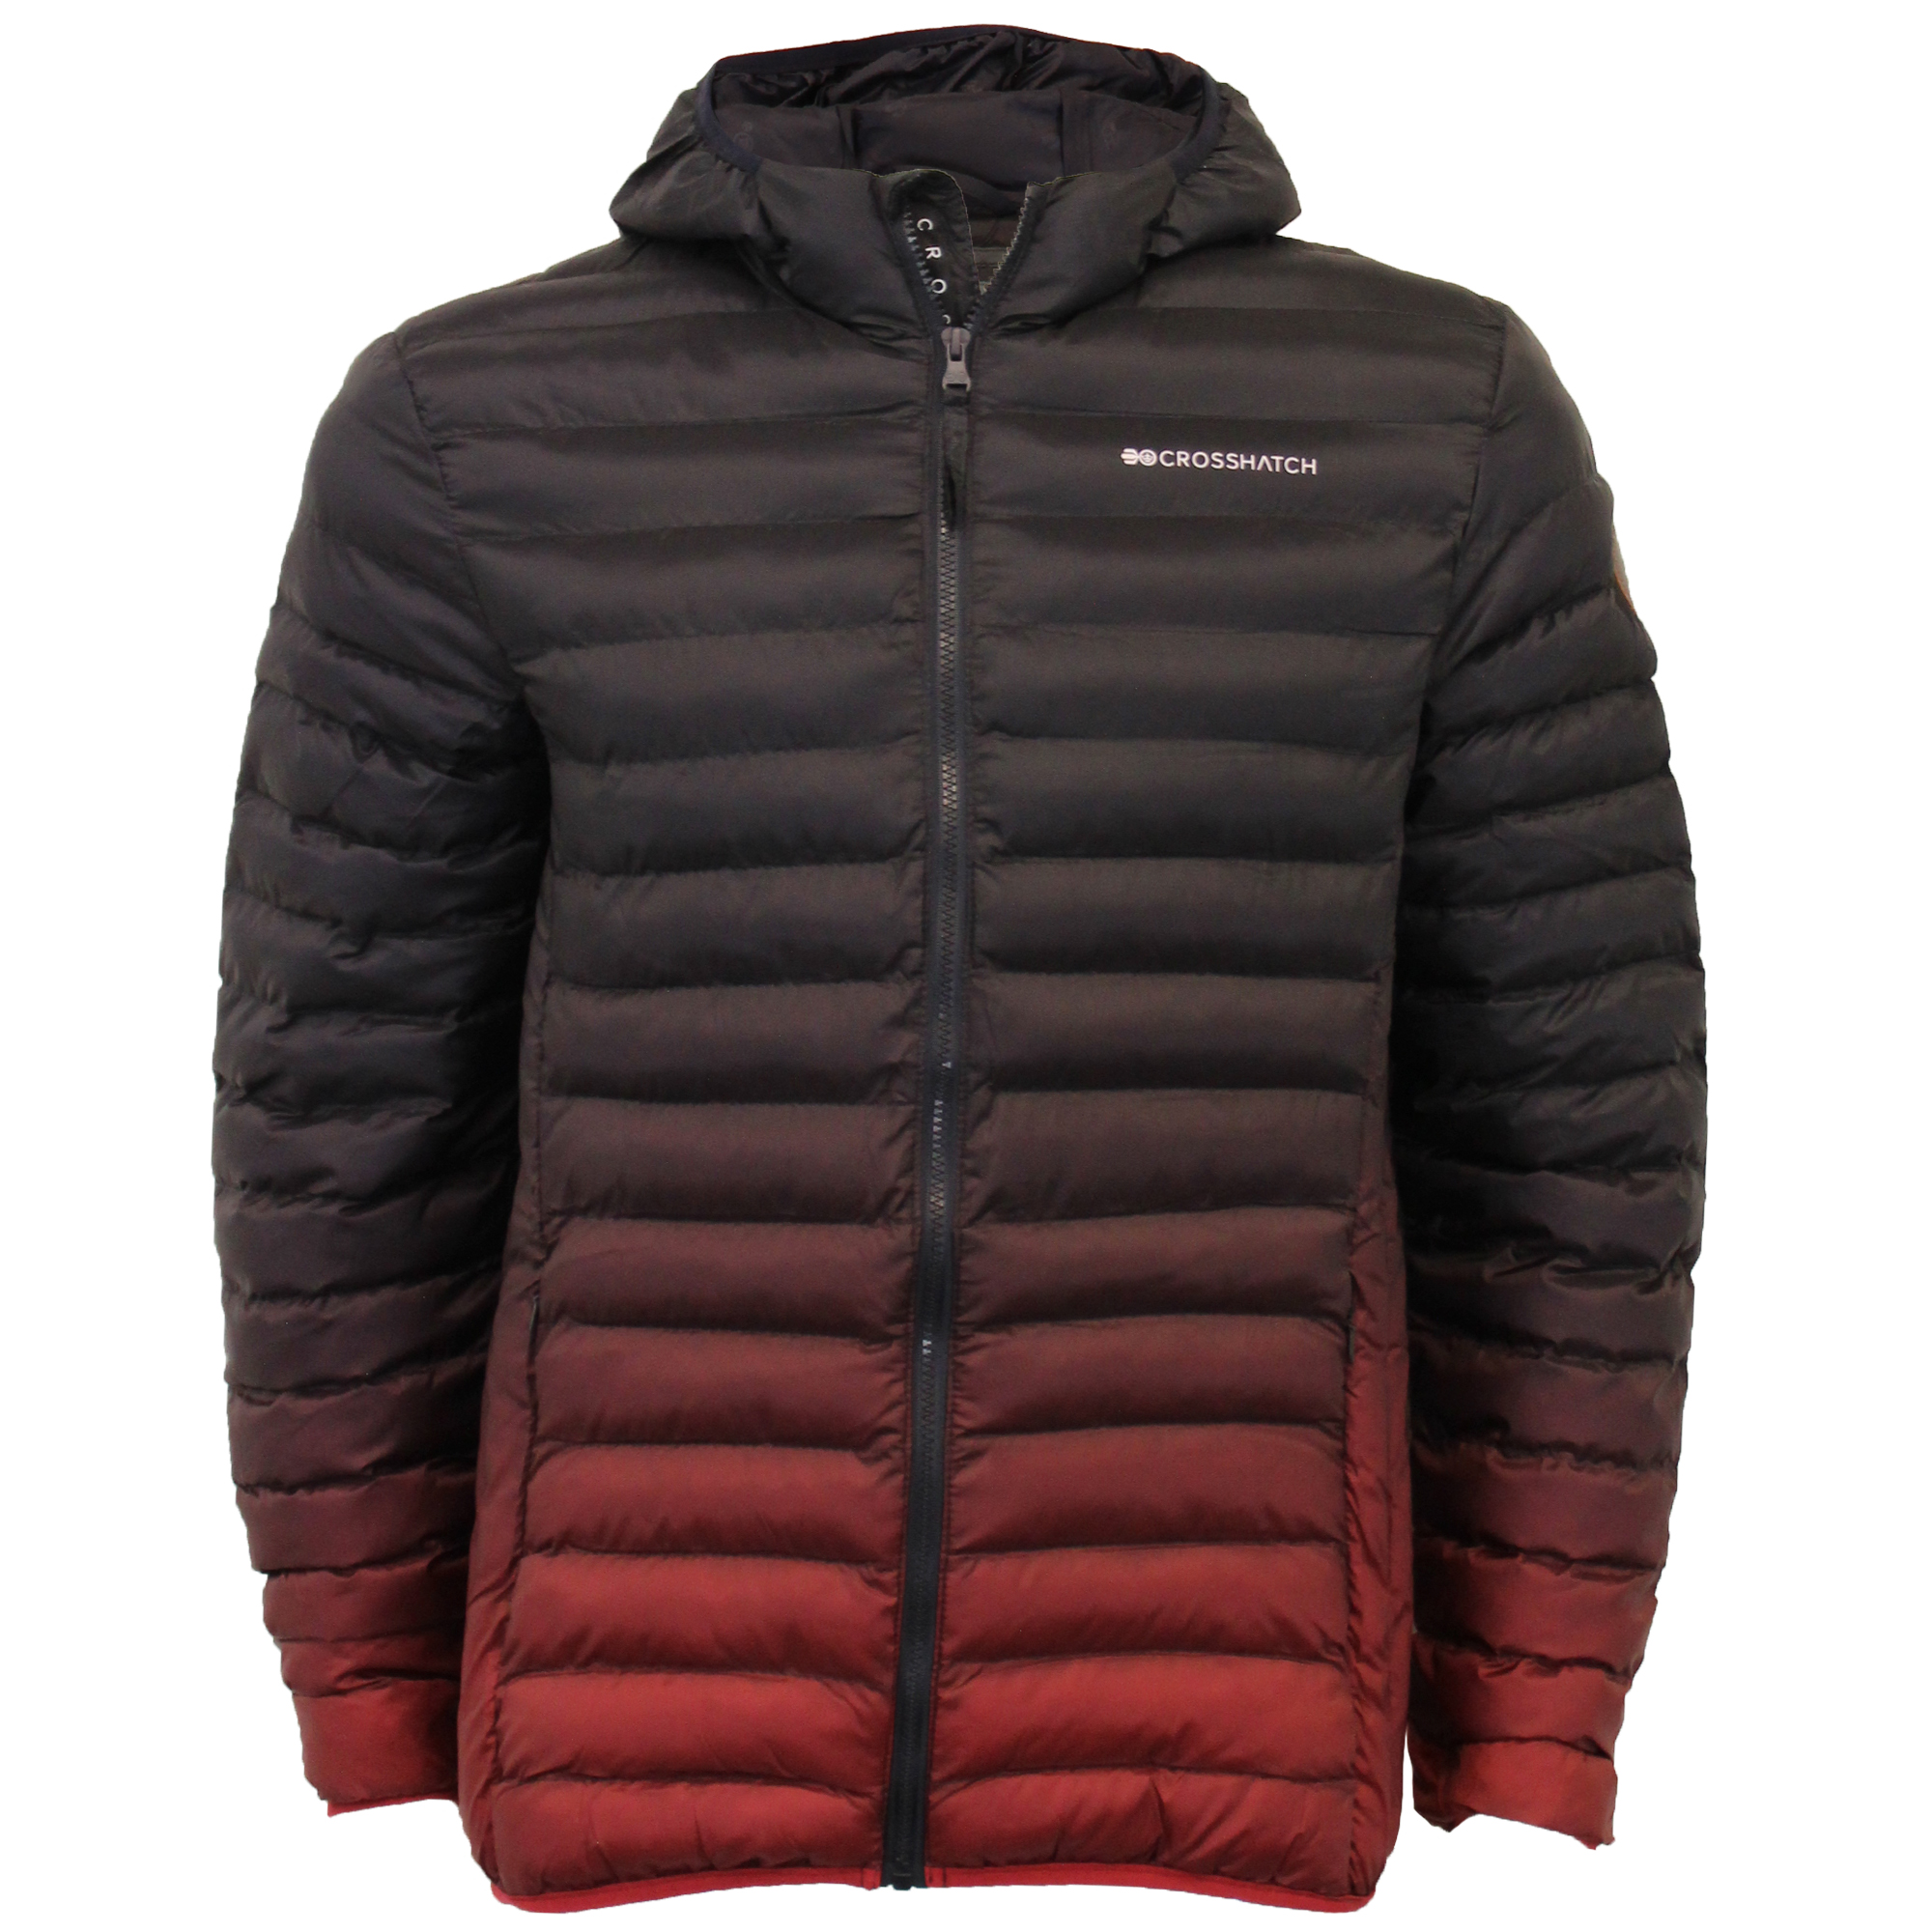 Mens-Jacket-Crosshatch-Hooded-Padded-Quilted-Two-Tone-FADEDOWN-Lined-Winter-New thumbnail 7